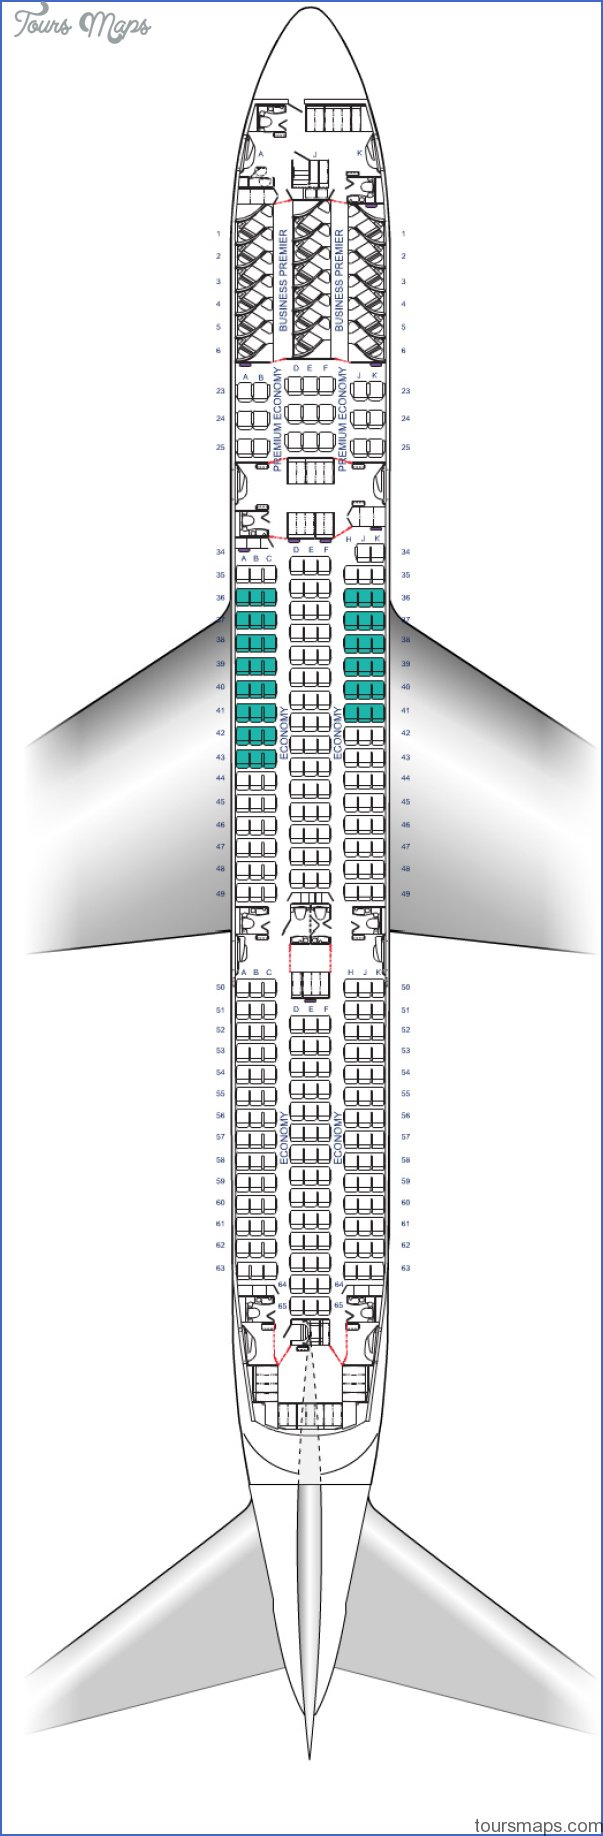 air new zealand boeing 787 900 dreamliner seat map diagram Air New Zealand Seat Map